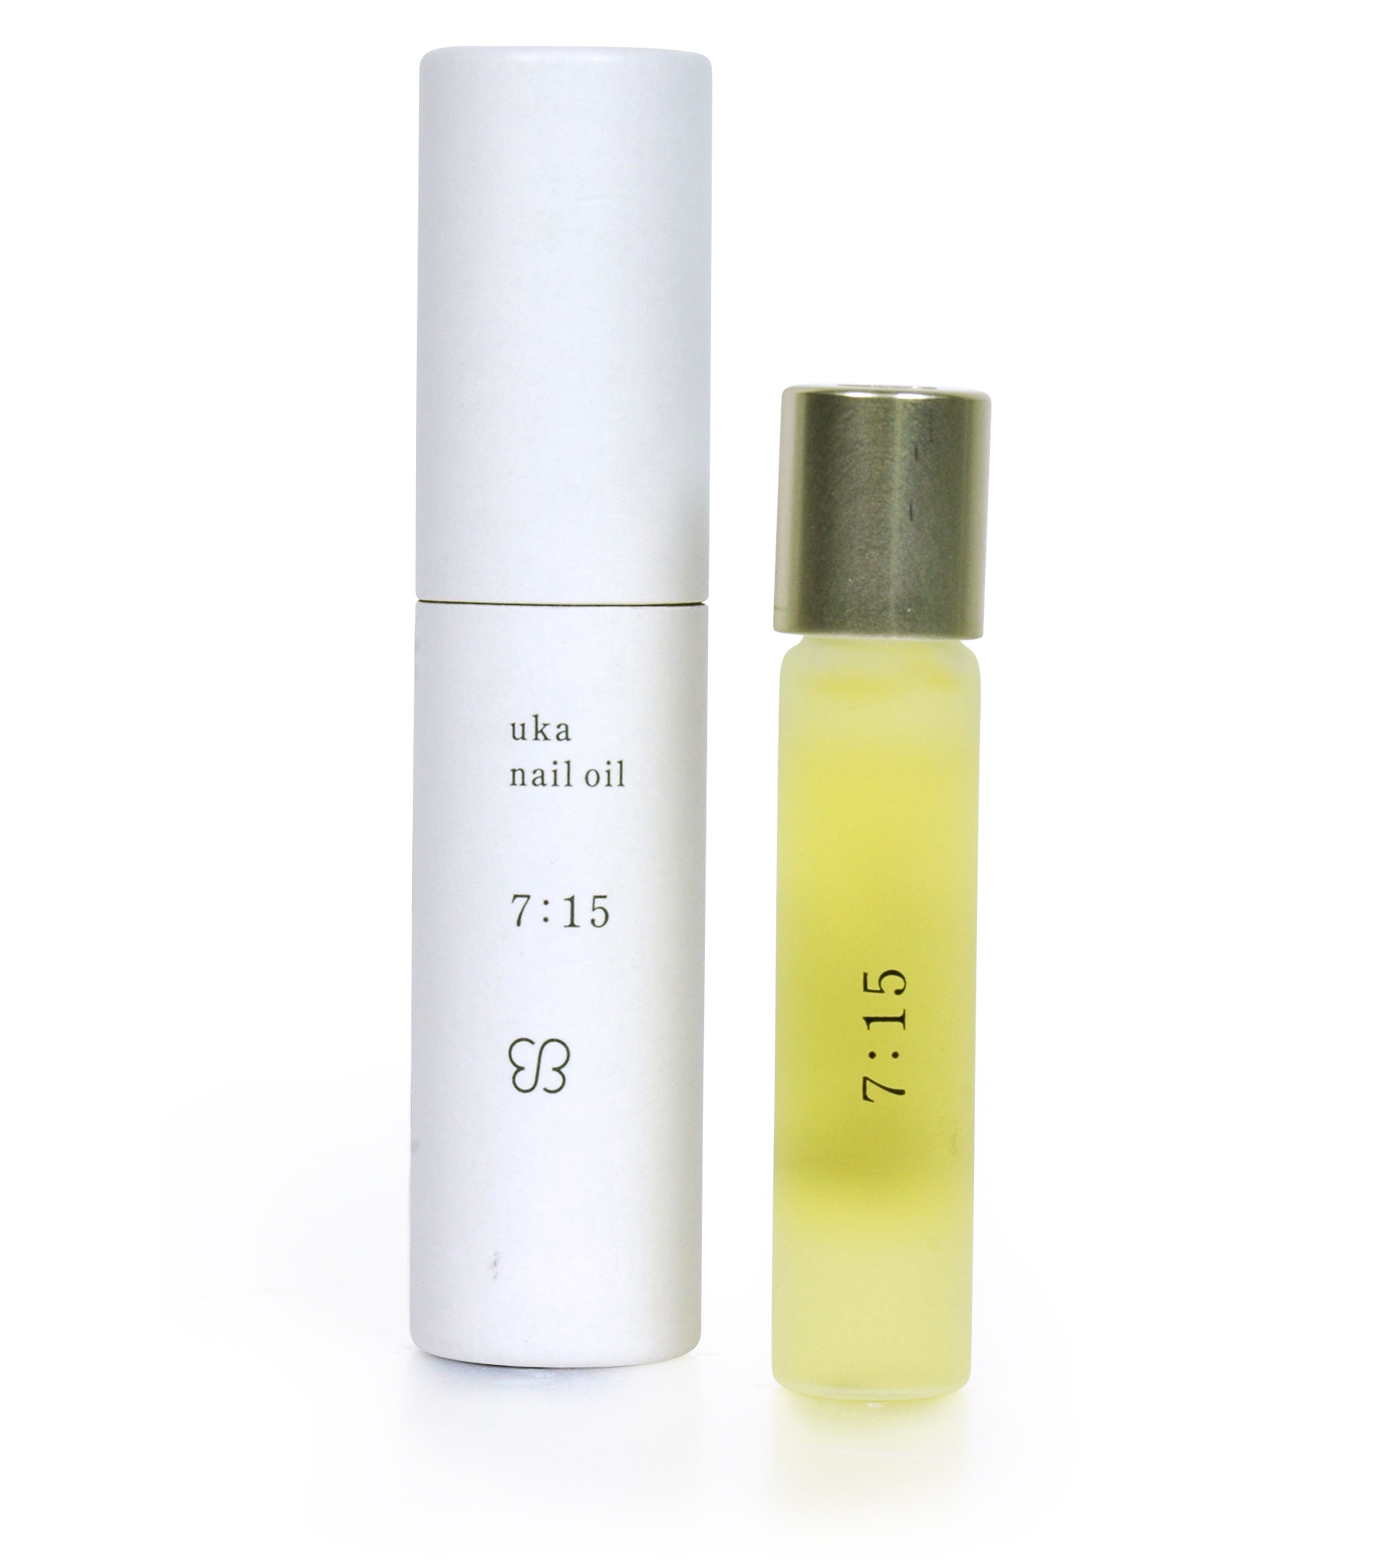 uka(ウカ)のnail oil 7:15-LIGHT YELLOW(BATH-BODY/BATH / BODY)-uka715 拡大詳細画像1